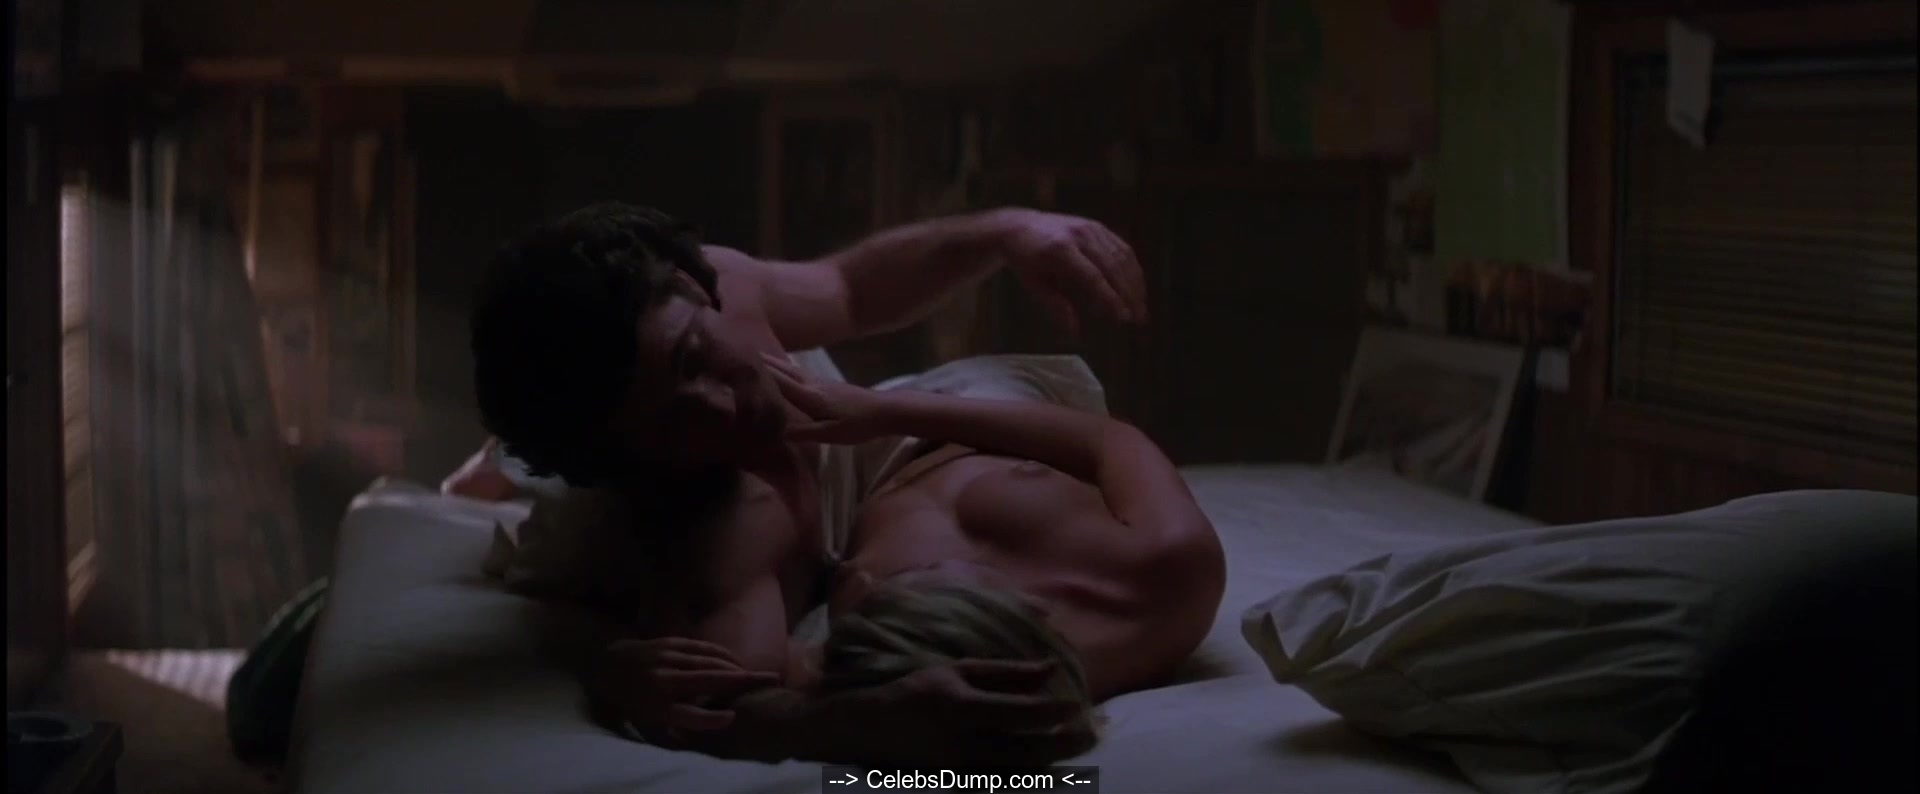 Lethal Weapon 2 Nude Scene